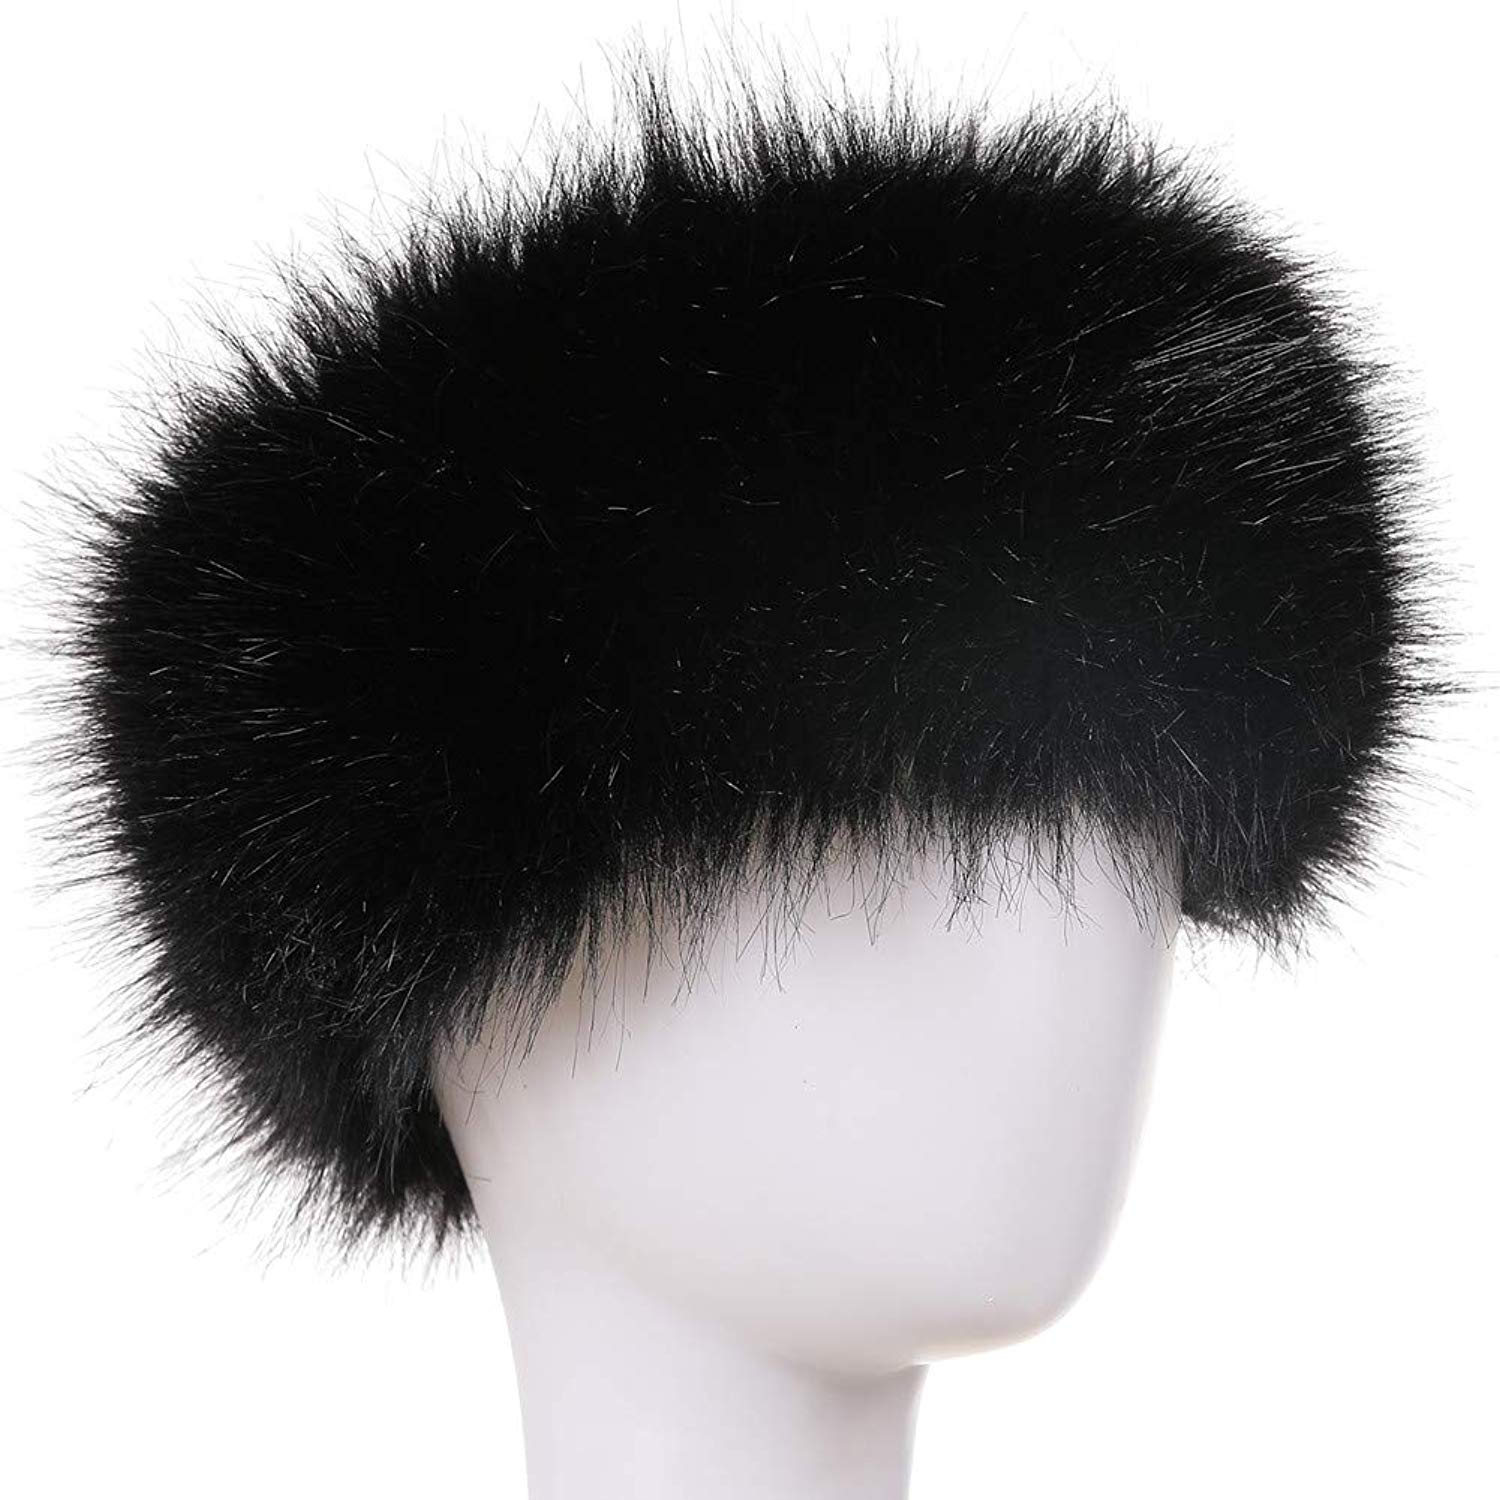 0c0edd3ee23 Get Quotations · Dikoaina Womens Faux Fur Headband Winter Earwarmer Earmuff  Hat Ski